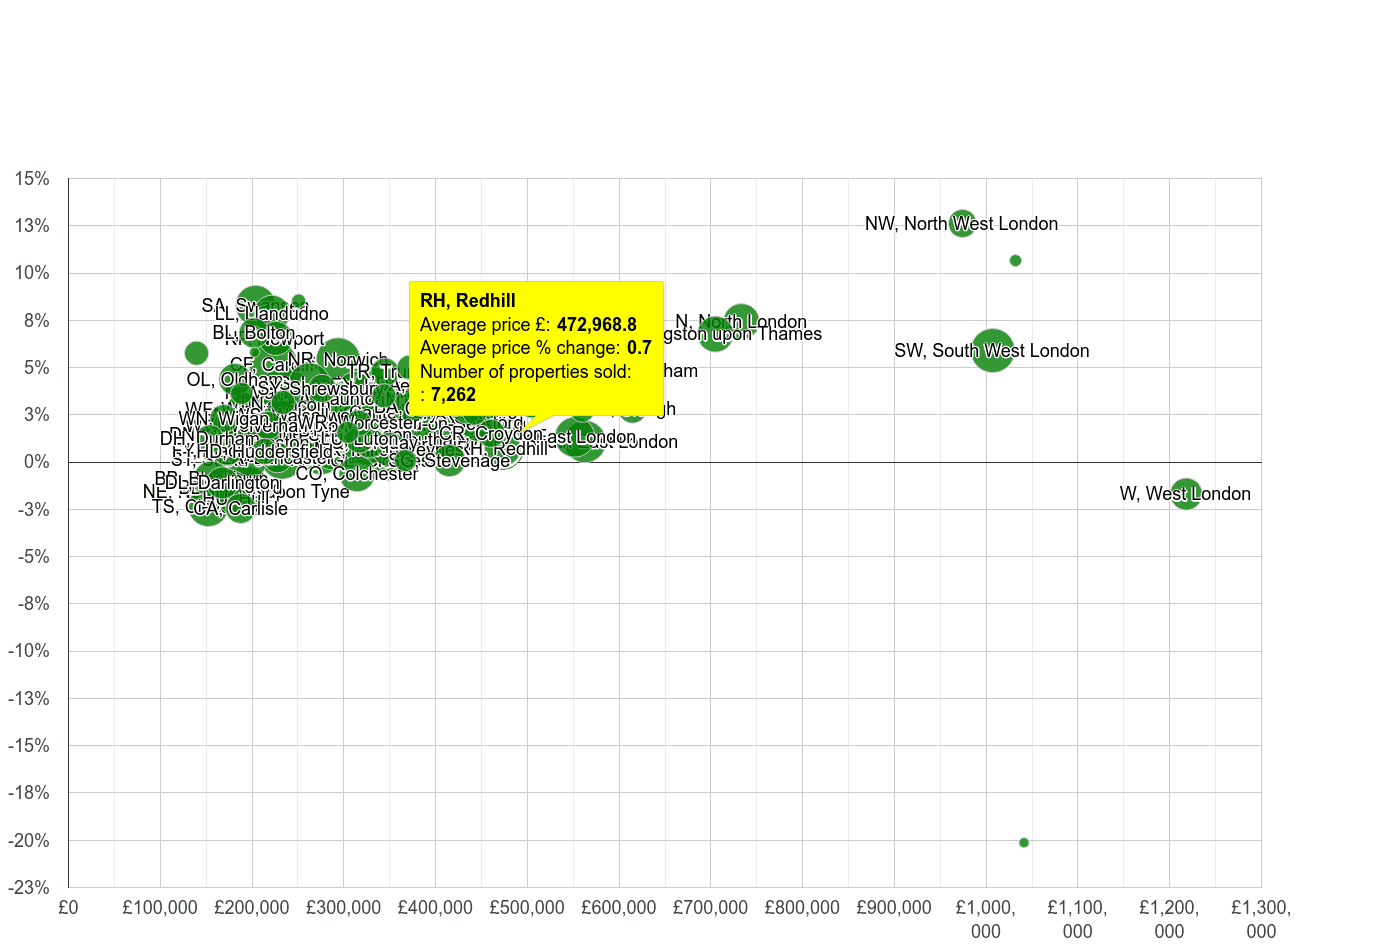 Redhill house prices compared to other areas